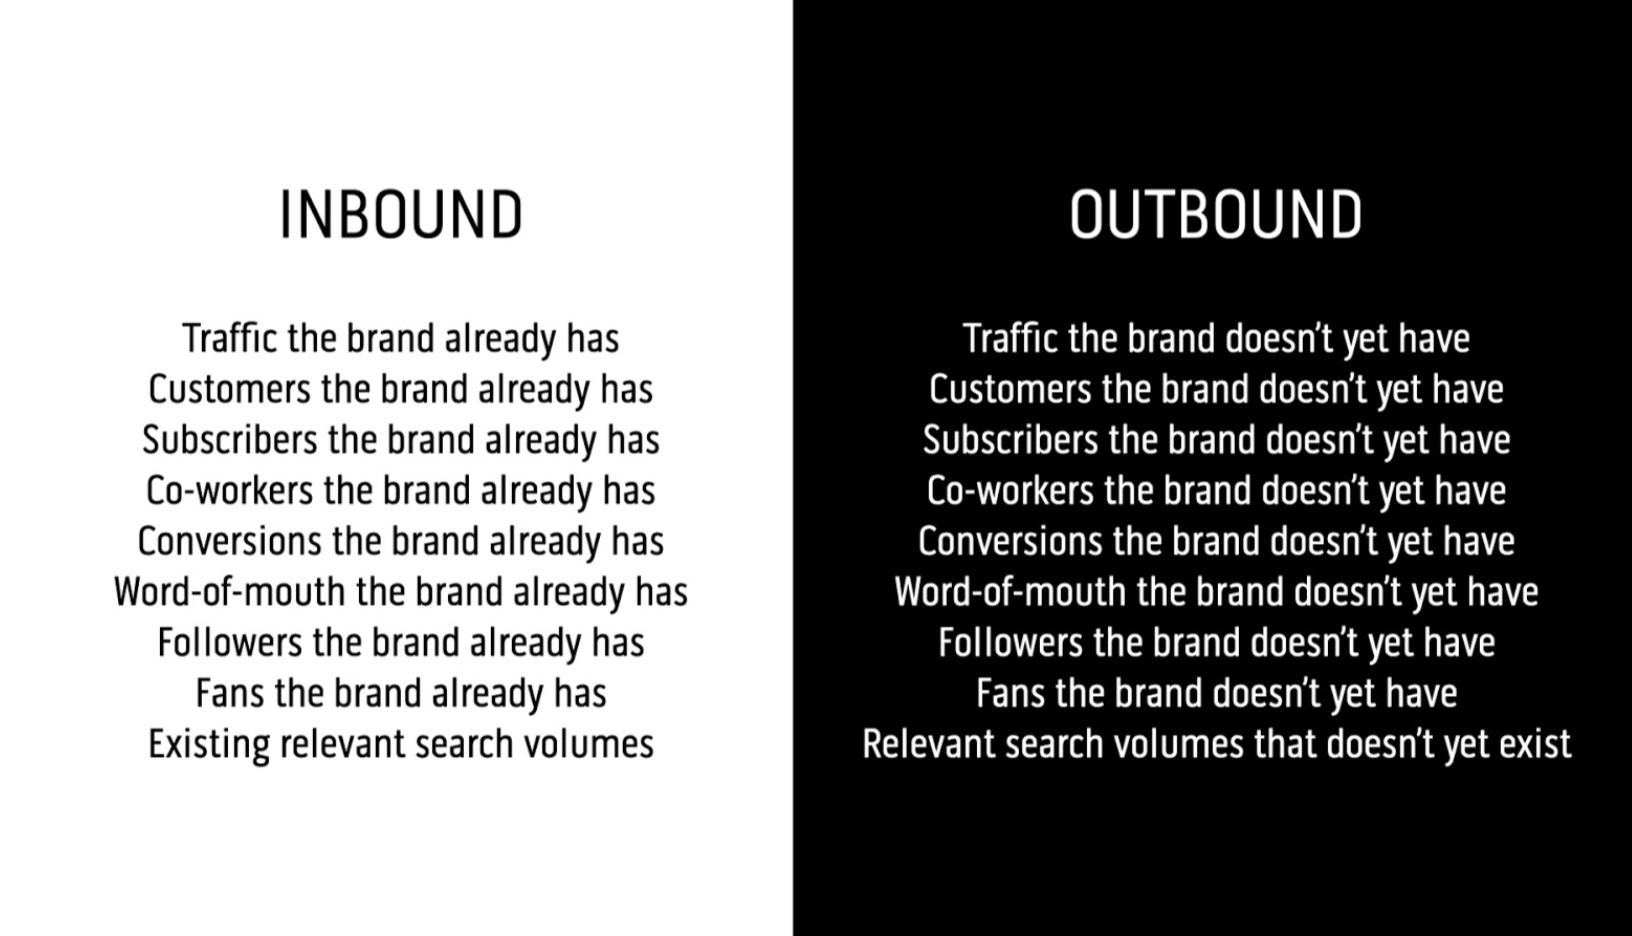 Whispr Group Communication Insights - Inbound & Outbound